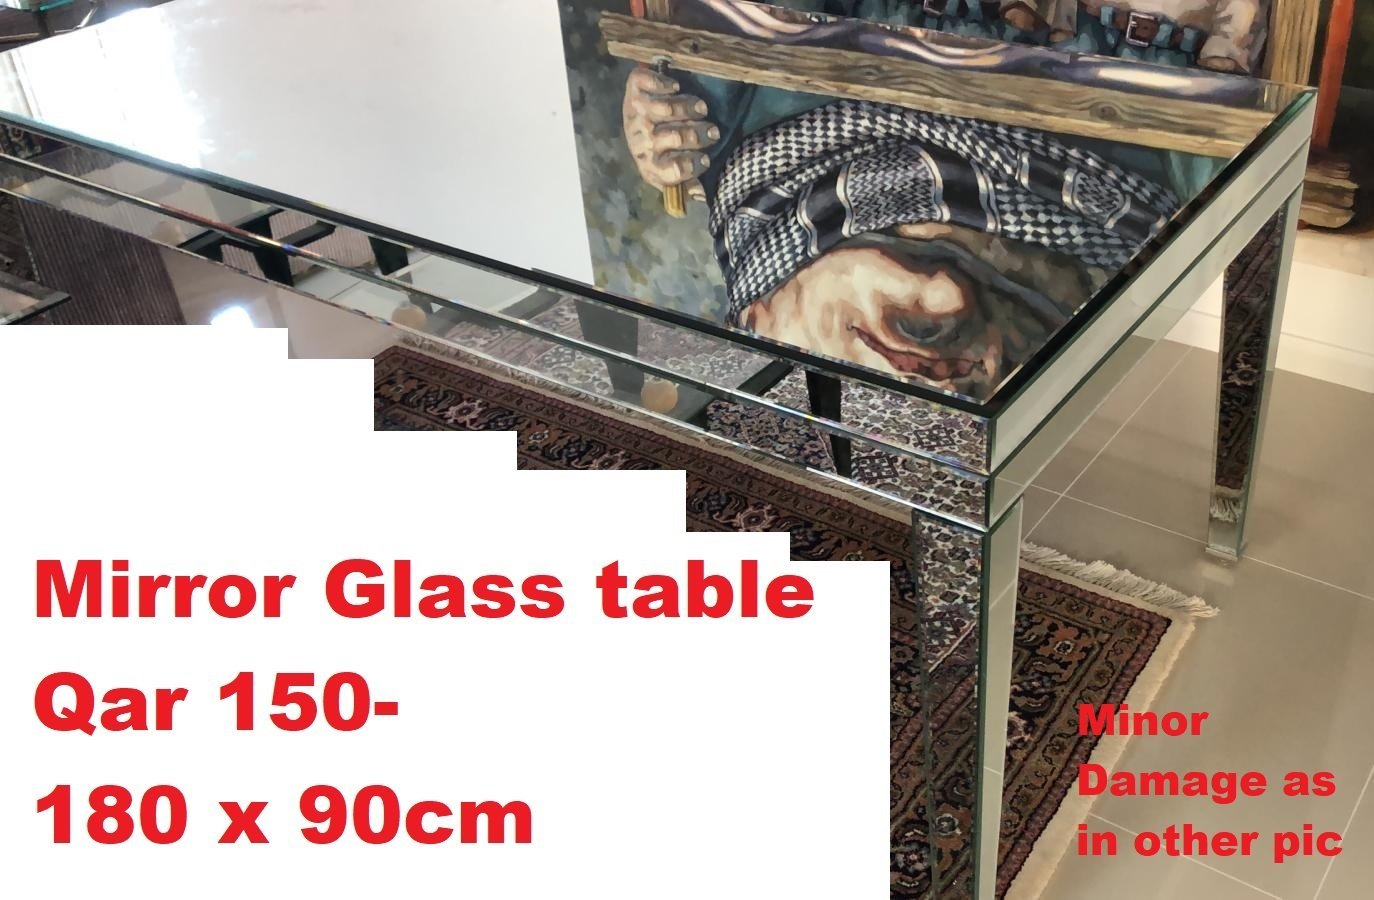 Mirror glass table.  Tiny damage